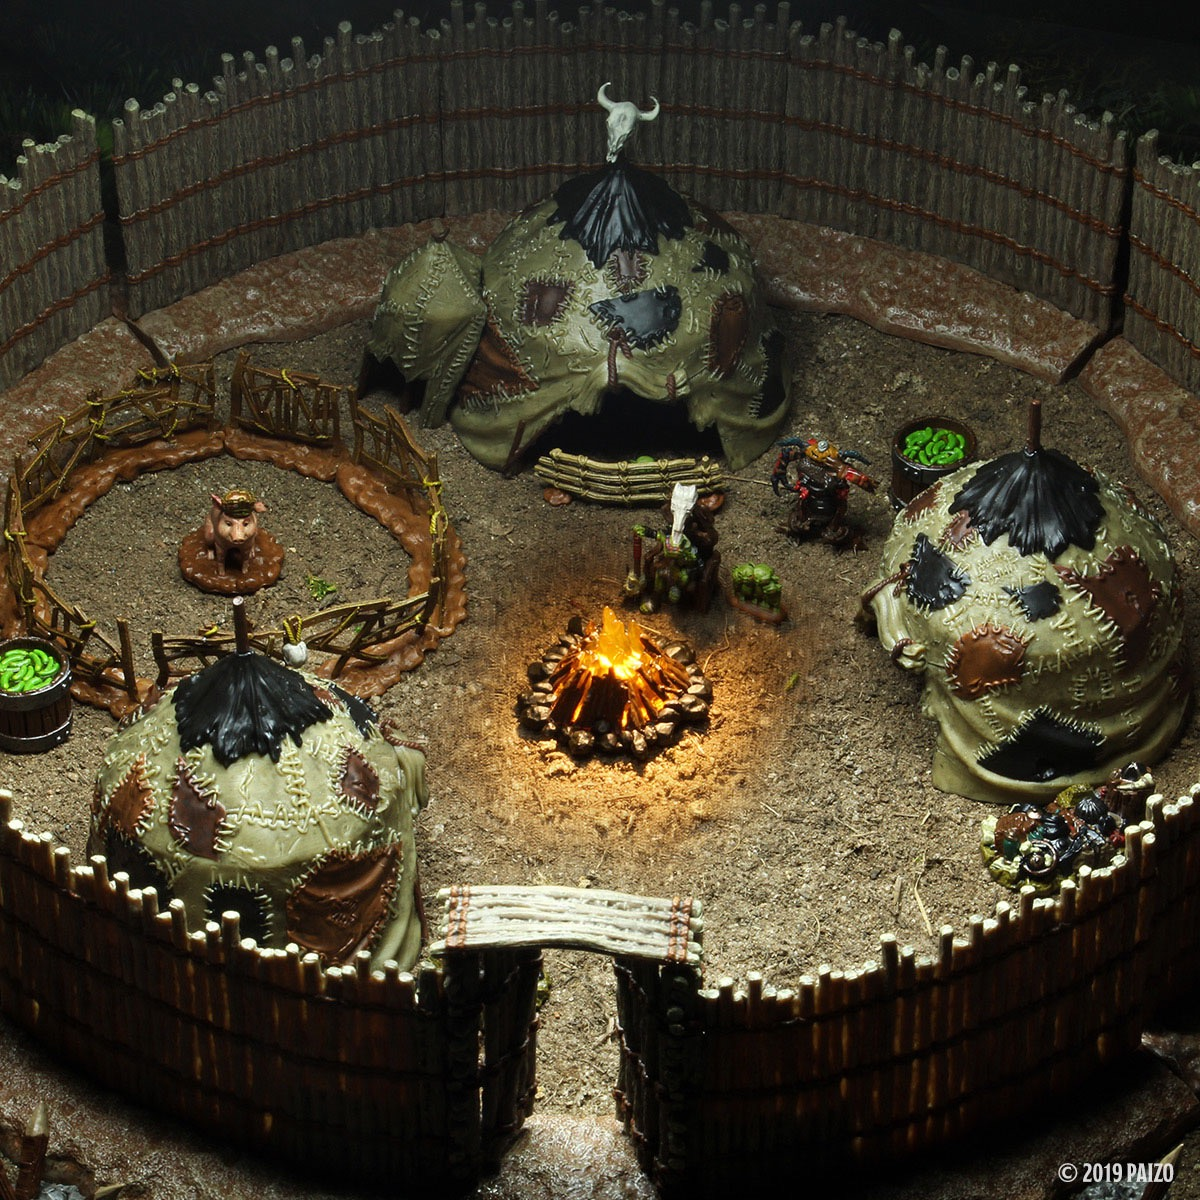 Three goblin tents sit inside a circular gated area. The gating is made from long wooden poles. A bonfire is aglow in the center. A pigpen has been set up next o one of the tents and the magic pig sits in hte middle.